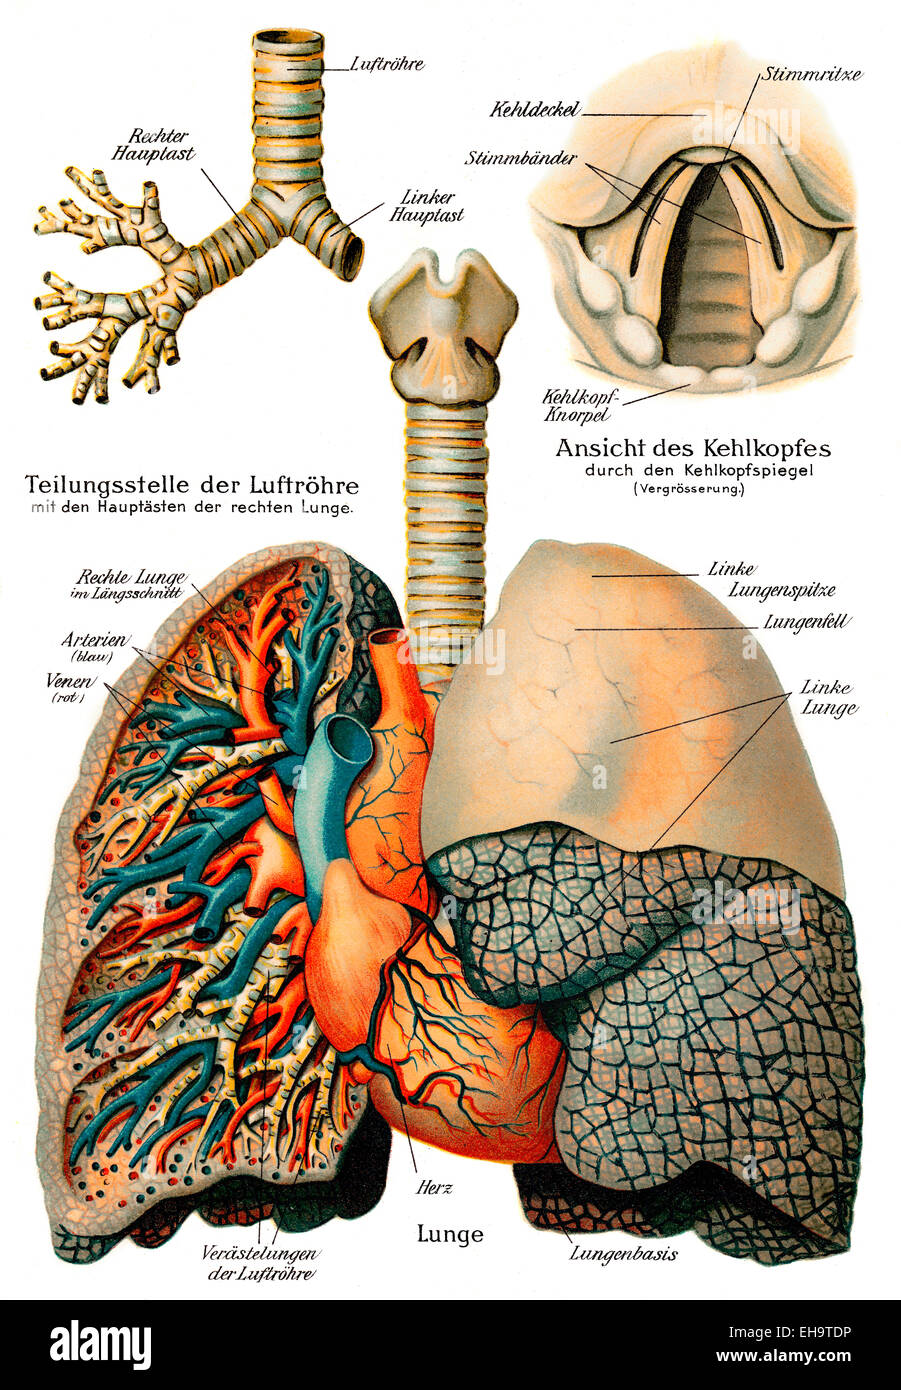 Respiratory system, 19th century, health counselor, - Stock Image